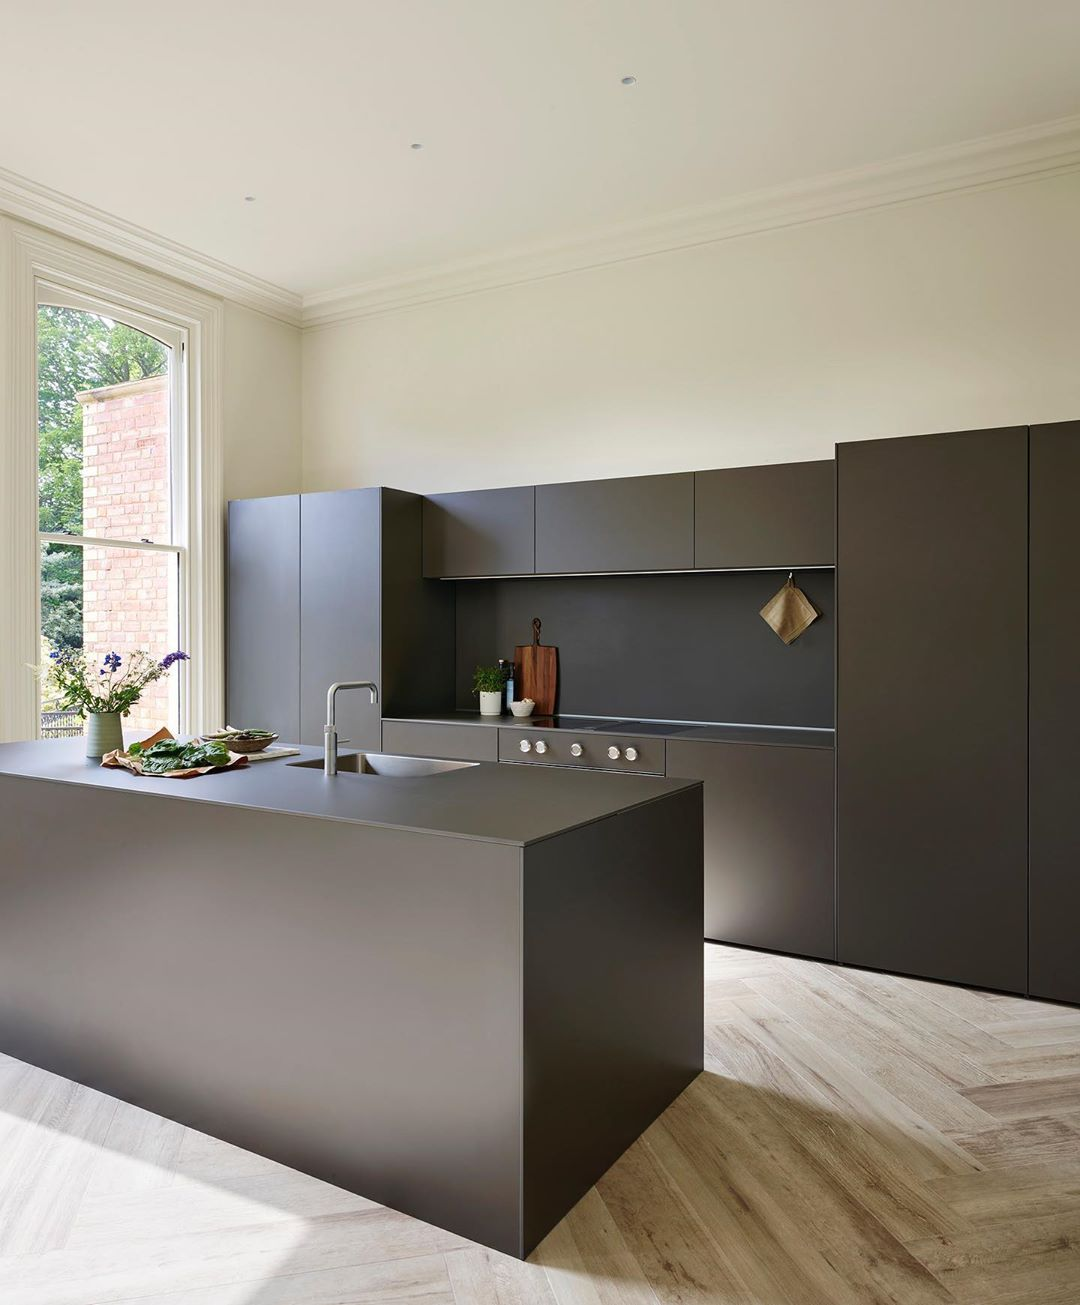 Pin On Kitchen Islands Small